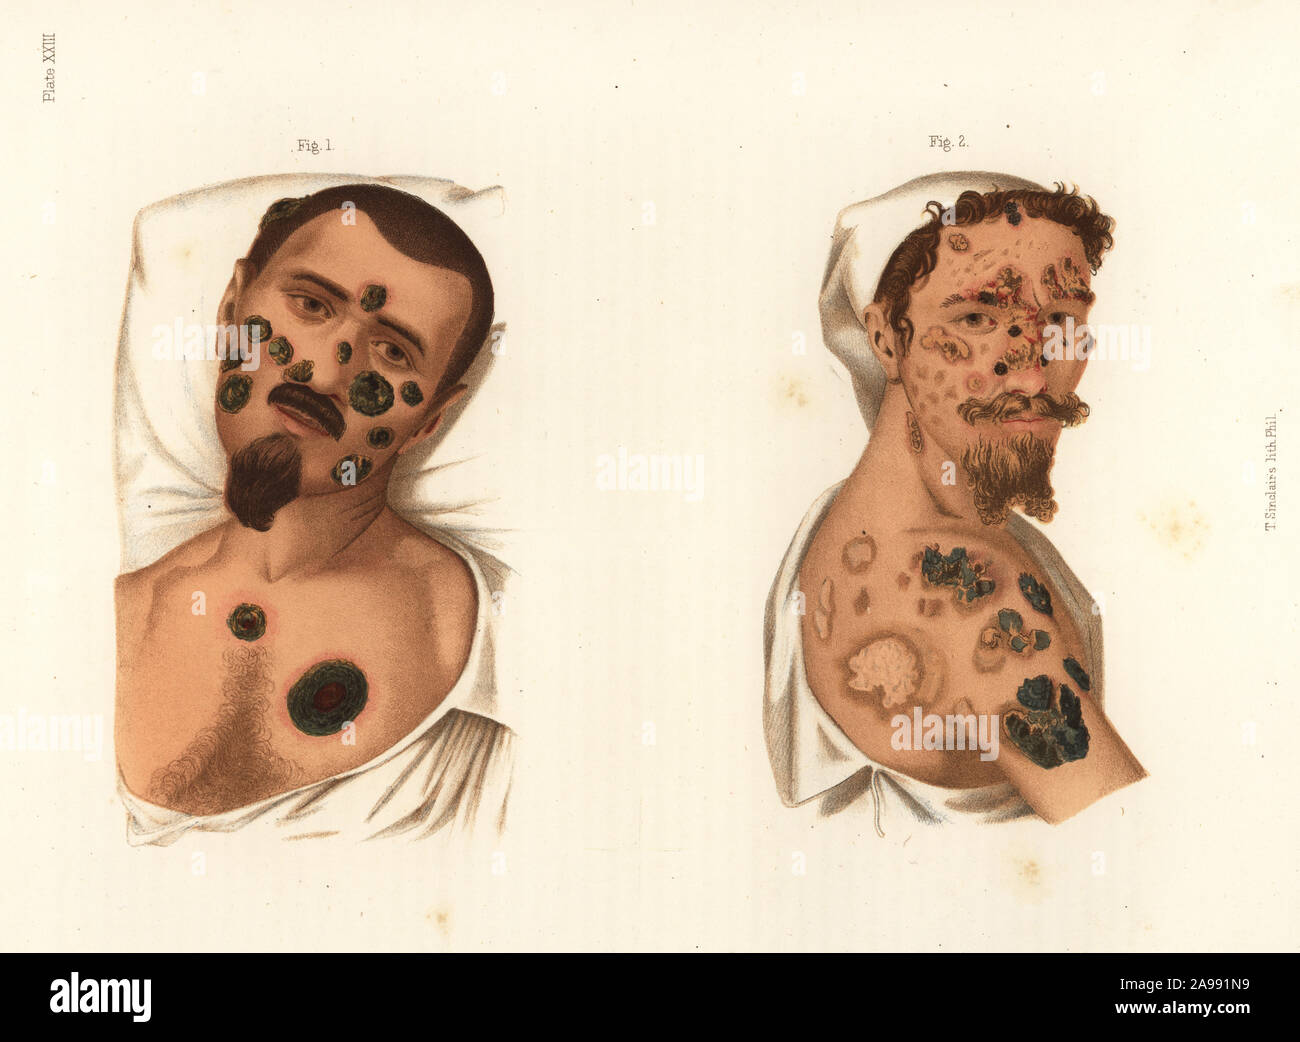 Secondary period syphilis symptoms on the body. Bullous syphilide rupia on the face treated with mercury 1, bullous syphilide rupia and cicatrices of tubercular eruptions treated with mercury and potassium iodide 2. Chromolithograph by T. Sinclaire from Freeman J. Bumstead's Atlas of Venereal Diseases, Henry C. Lea, Philadelphia, 1868. First American edition of Auguste Cullerier's Precis iconographique des maladies veneriennes. Stock Photo